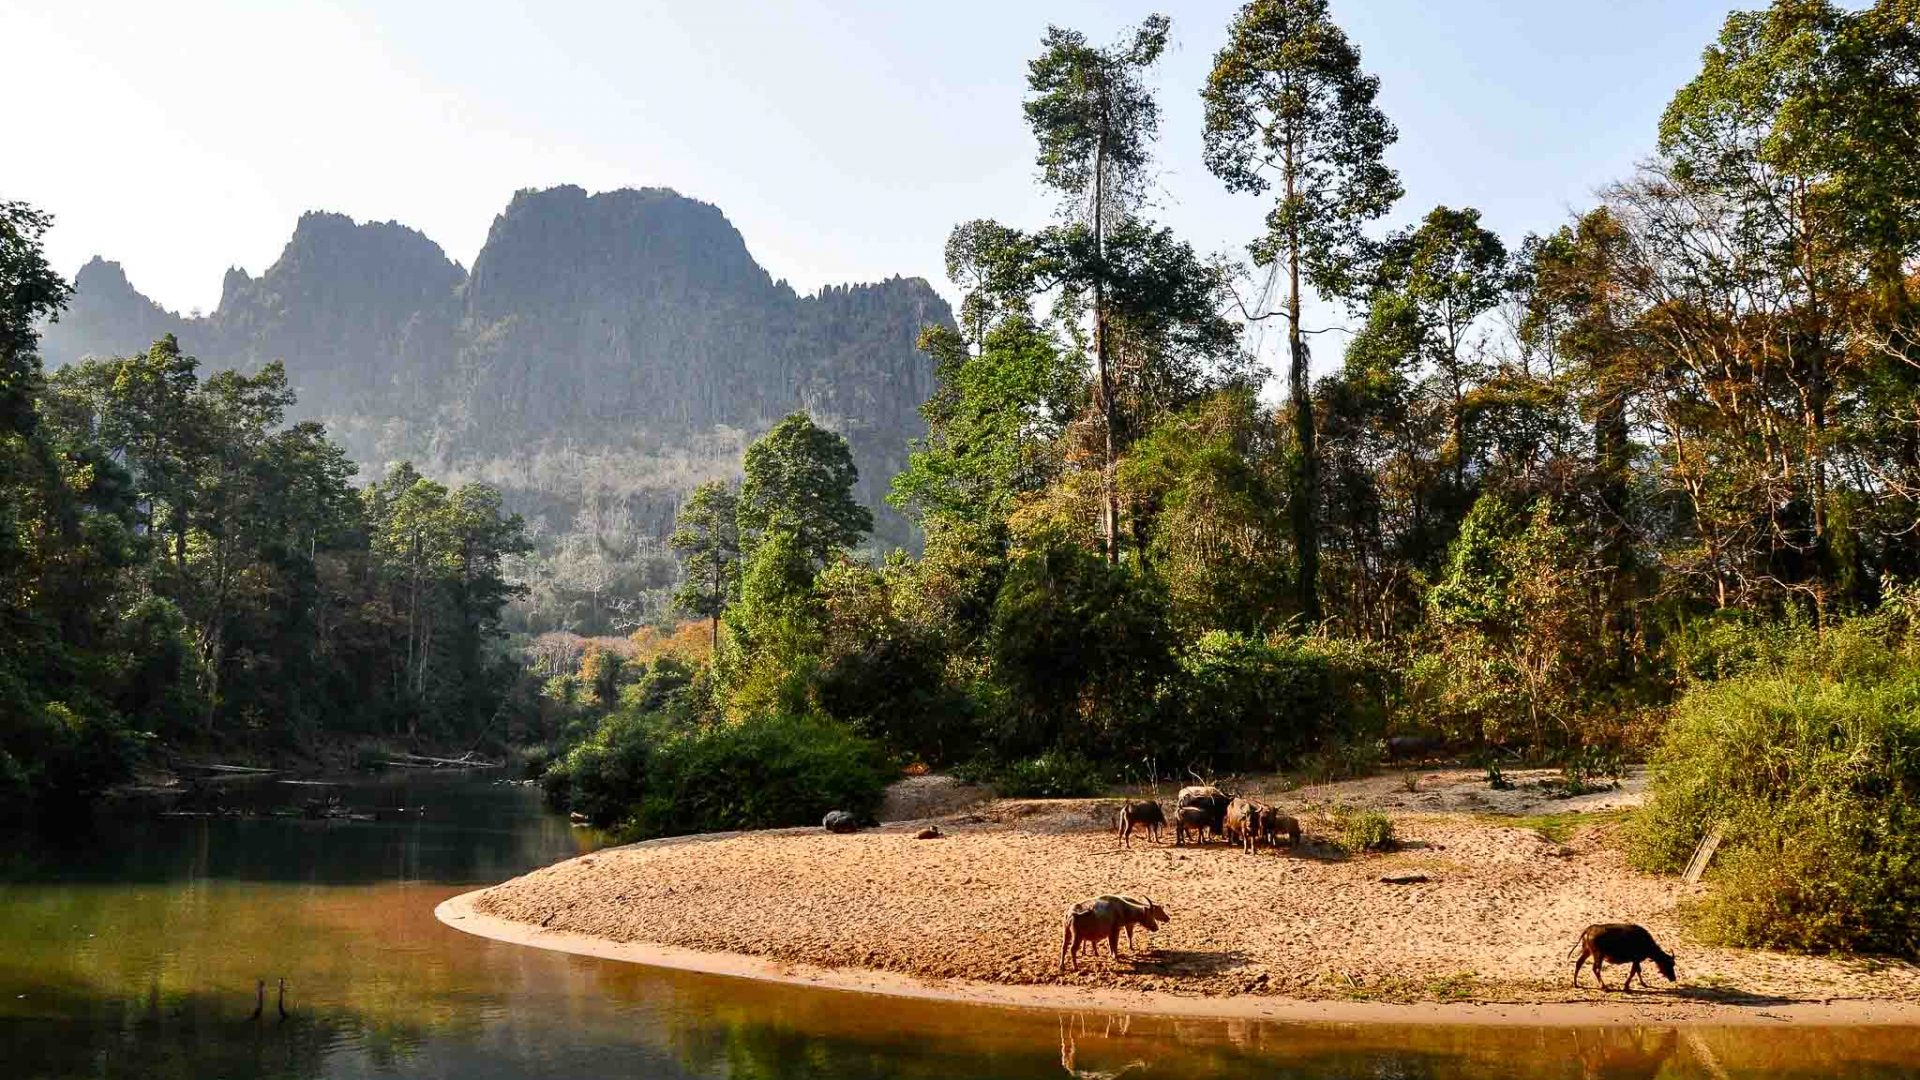 Buffalo relax on the shore of the Hinboun River in Laos.